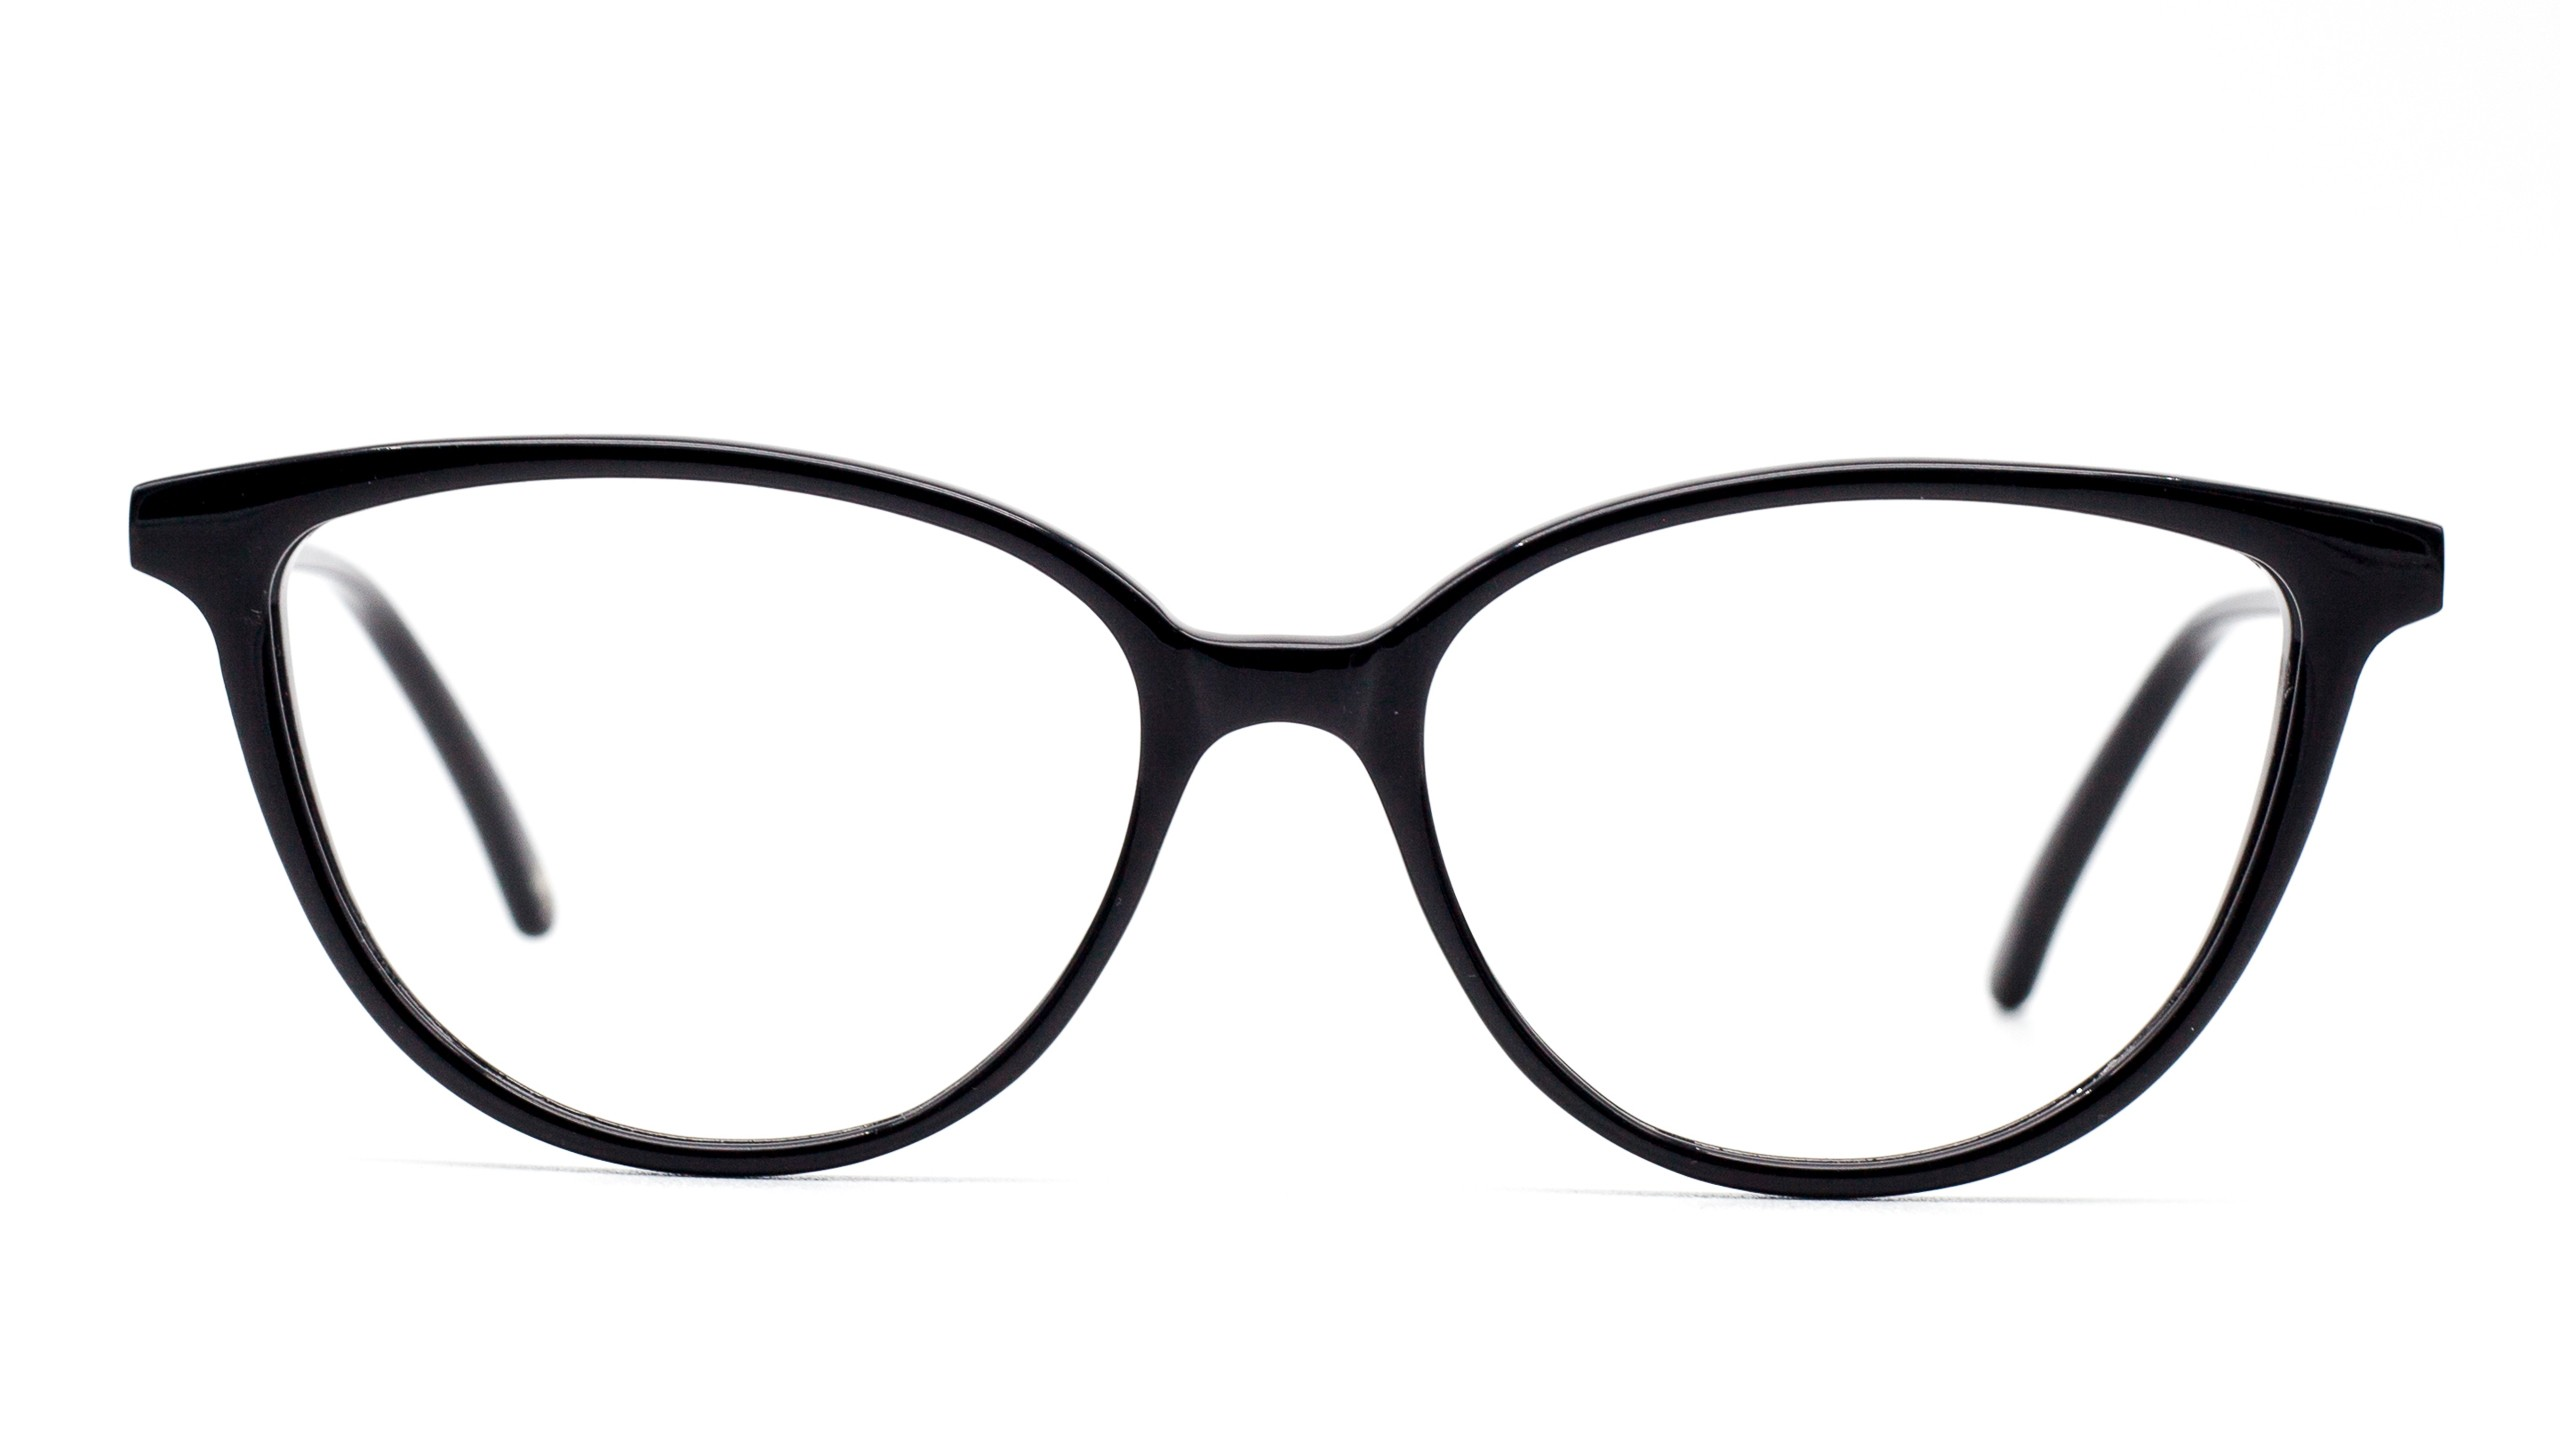 eyeglasses-Nathan-Kaltermann-made-in-Italy-Kate-C01-Vista1